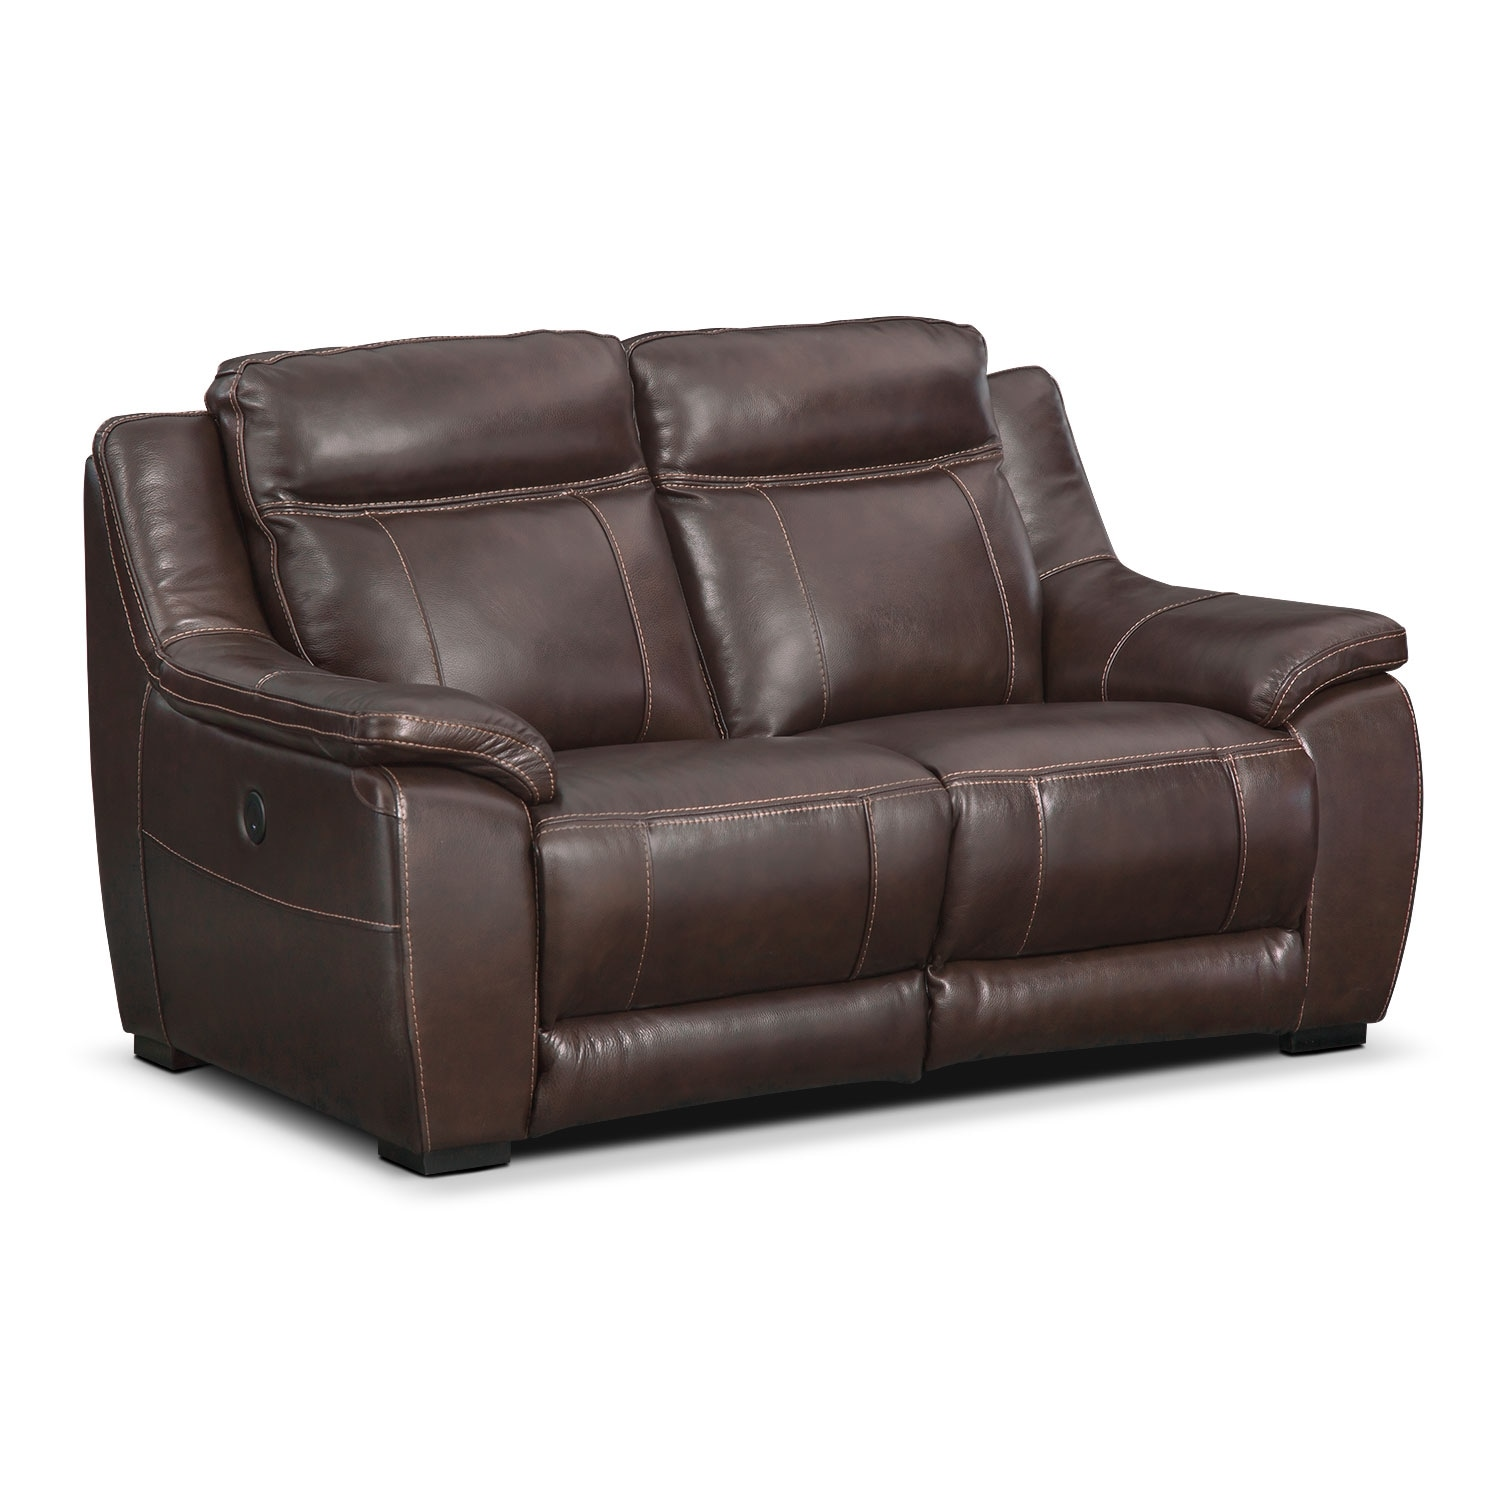 Lido Power Reclining Loveseat Brown American Signature Furniture